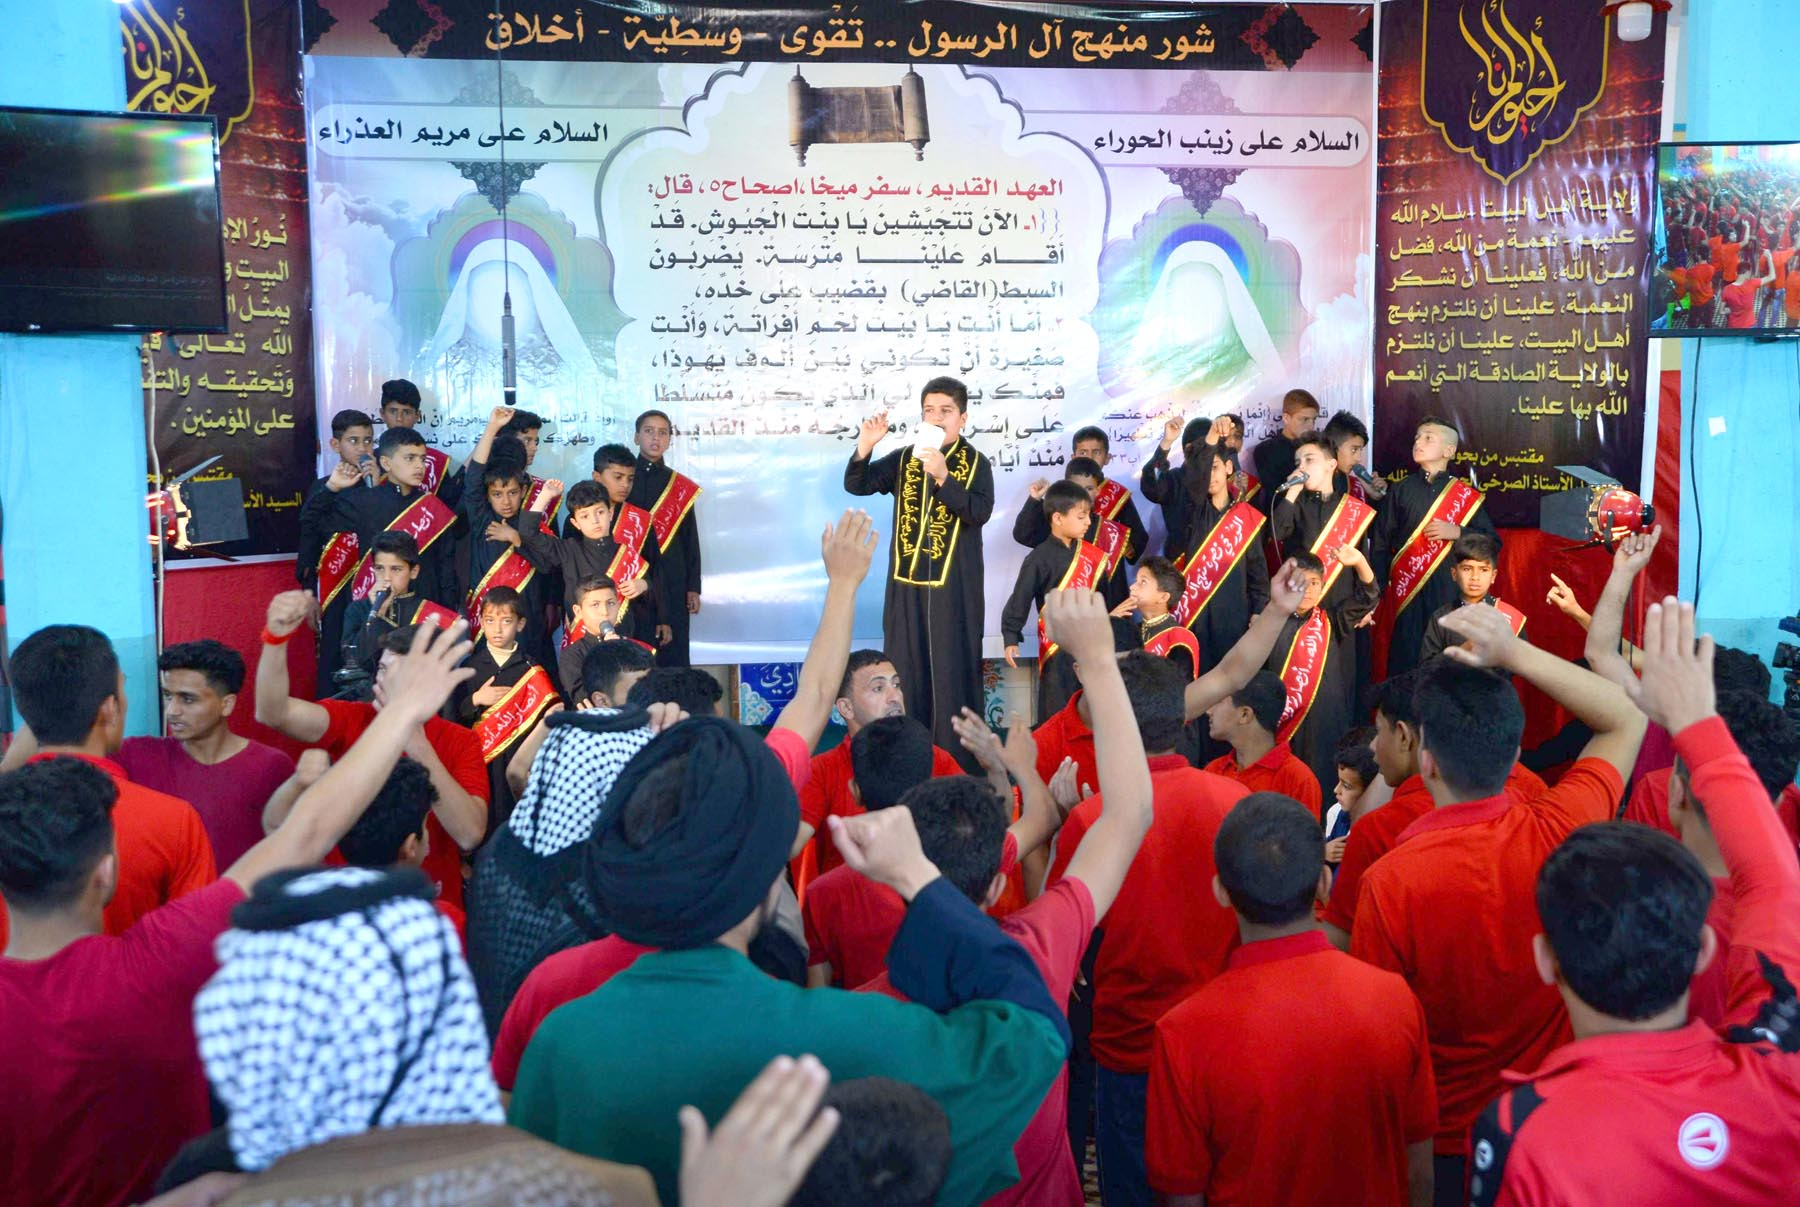 A young performer in a black robe chants as  Iraqi Shia youth take part in a mourning ceremony at their local mosque in the town of Midhatiya, south of Baghdad. (AFP)